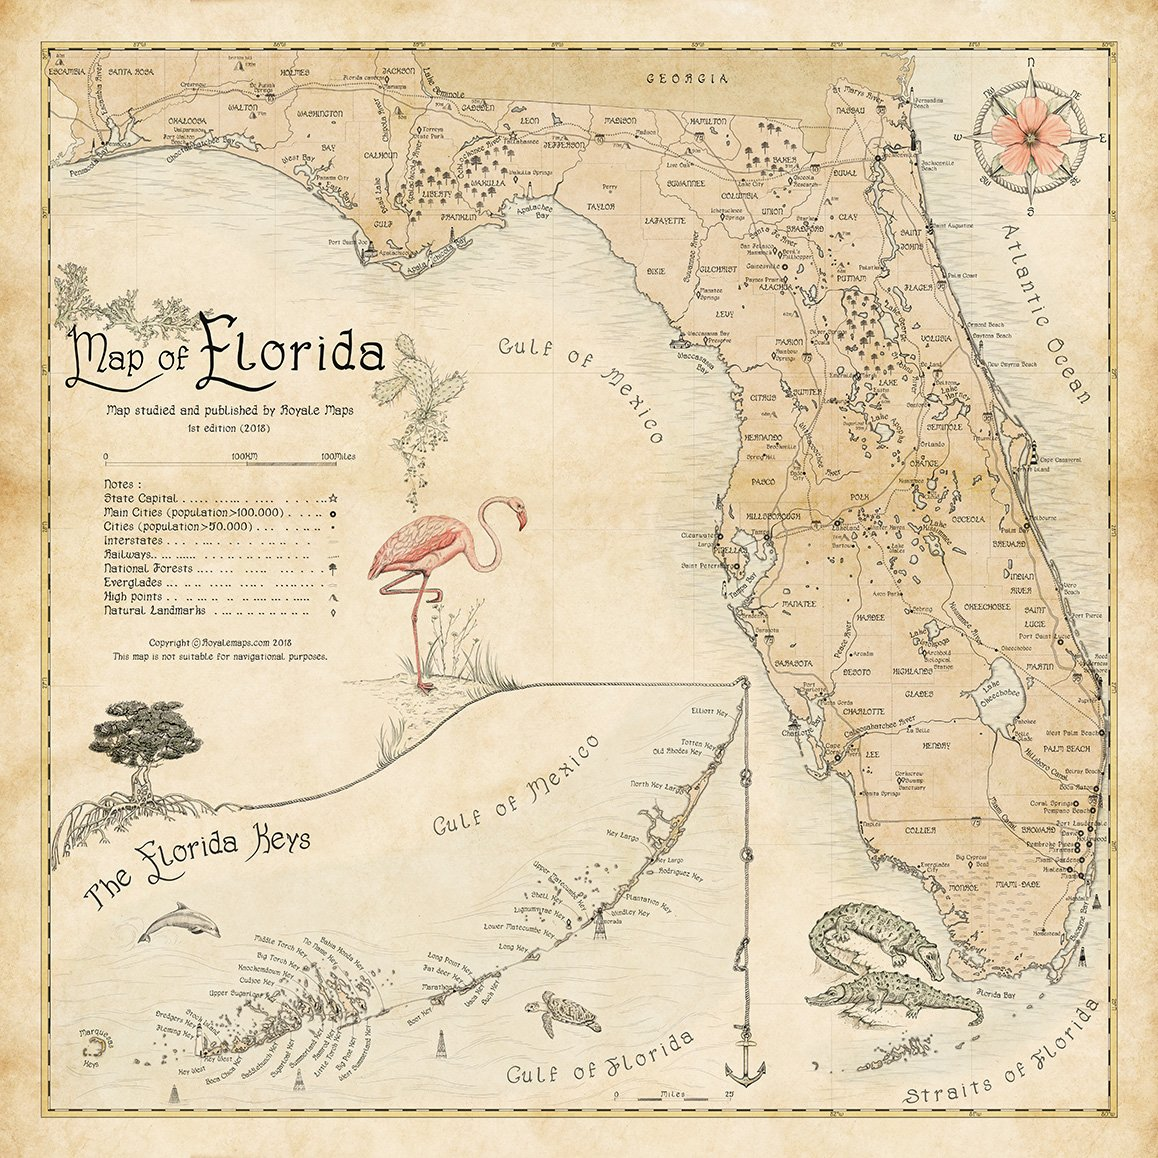 Flordia State Map.Map Of Florida Royale Maps